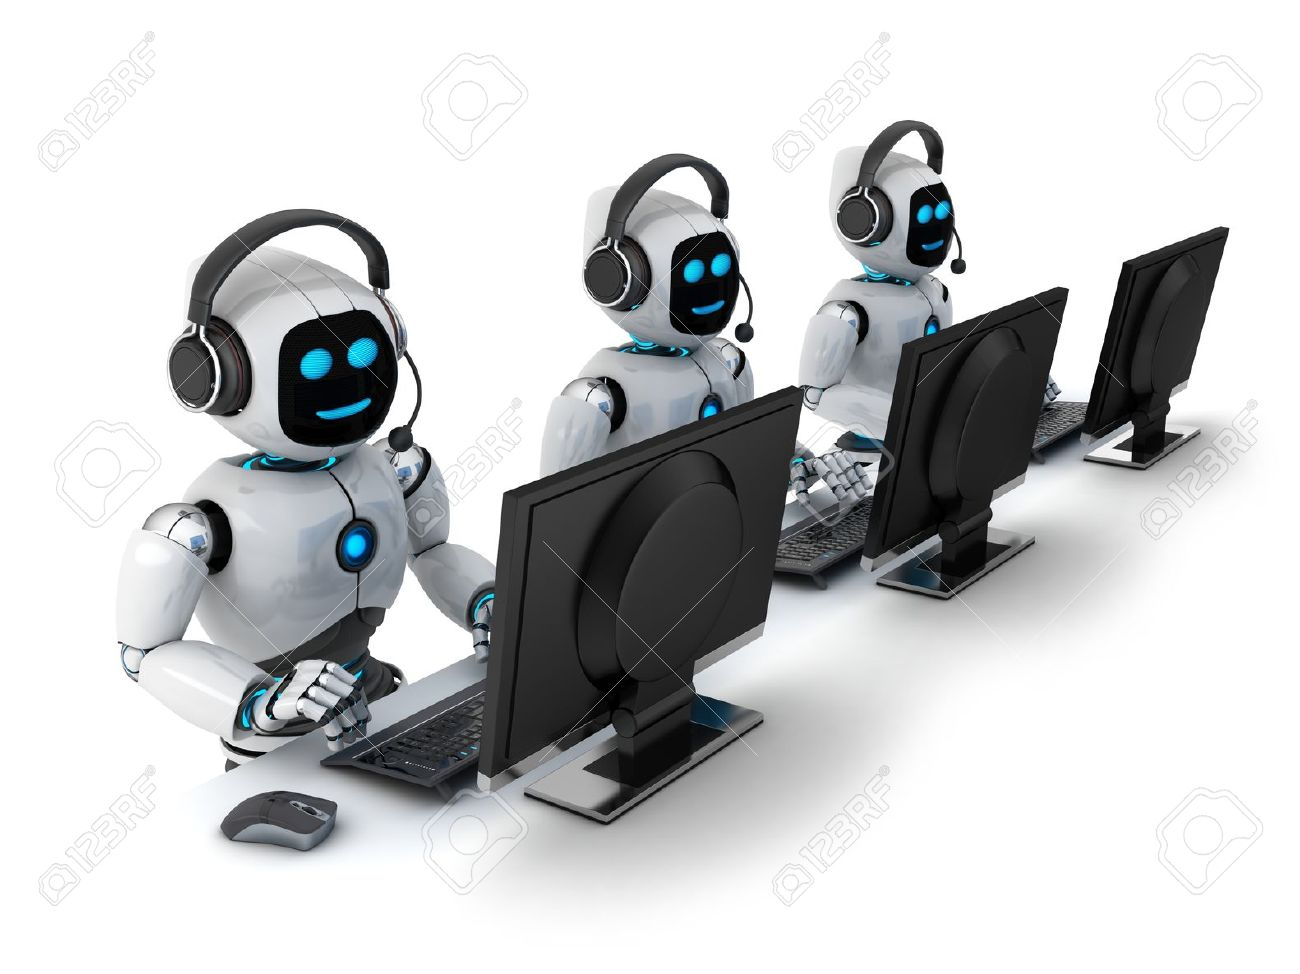 17997318-Robots-with-headphones-done-in-3d--Stock-Photo-robot-computer.jpg